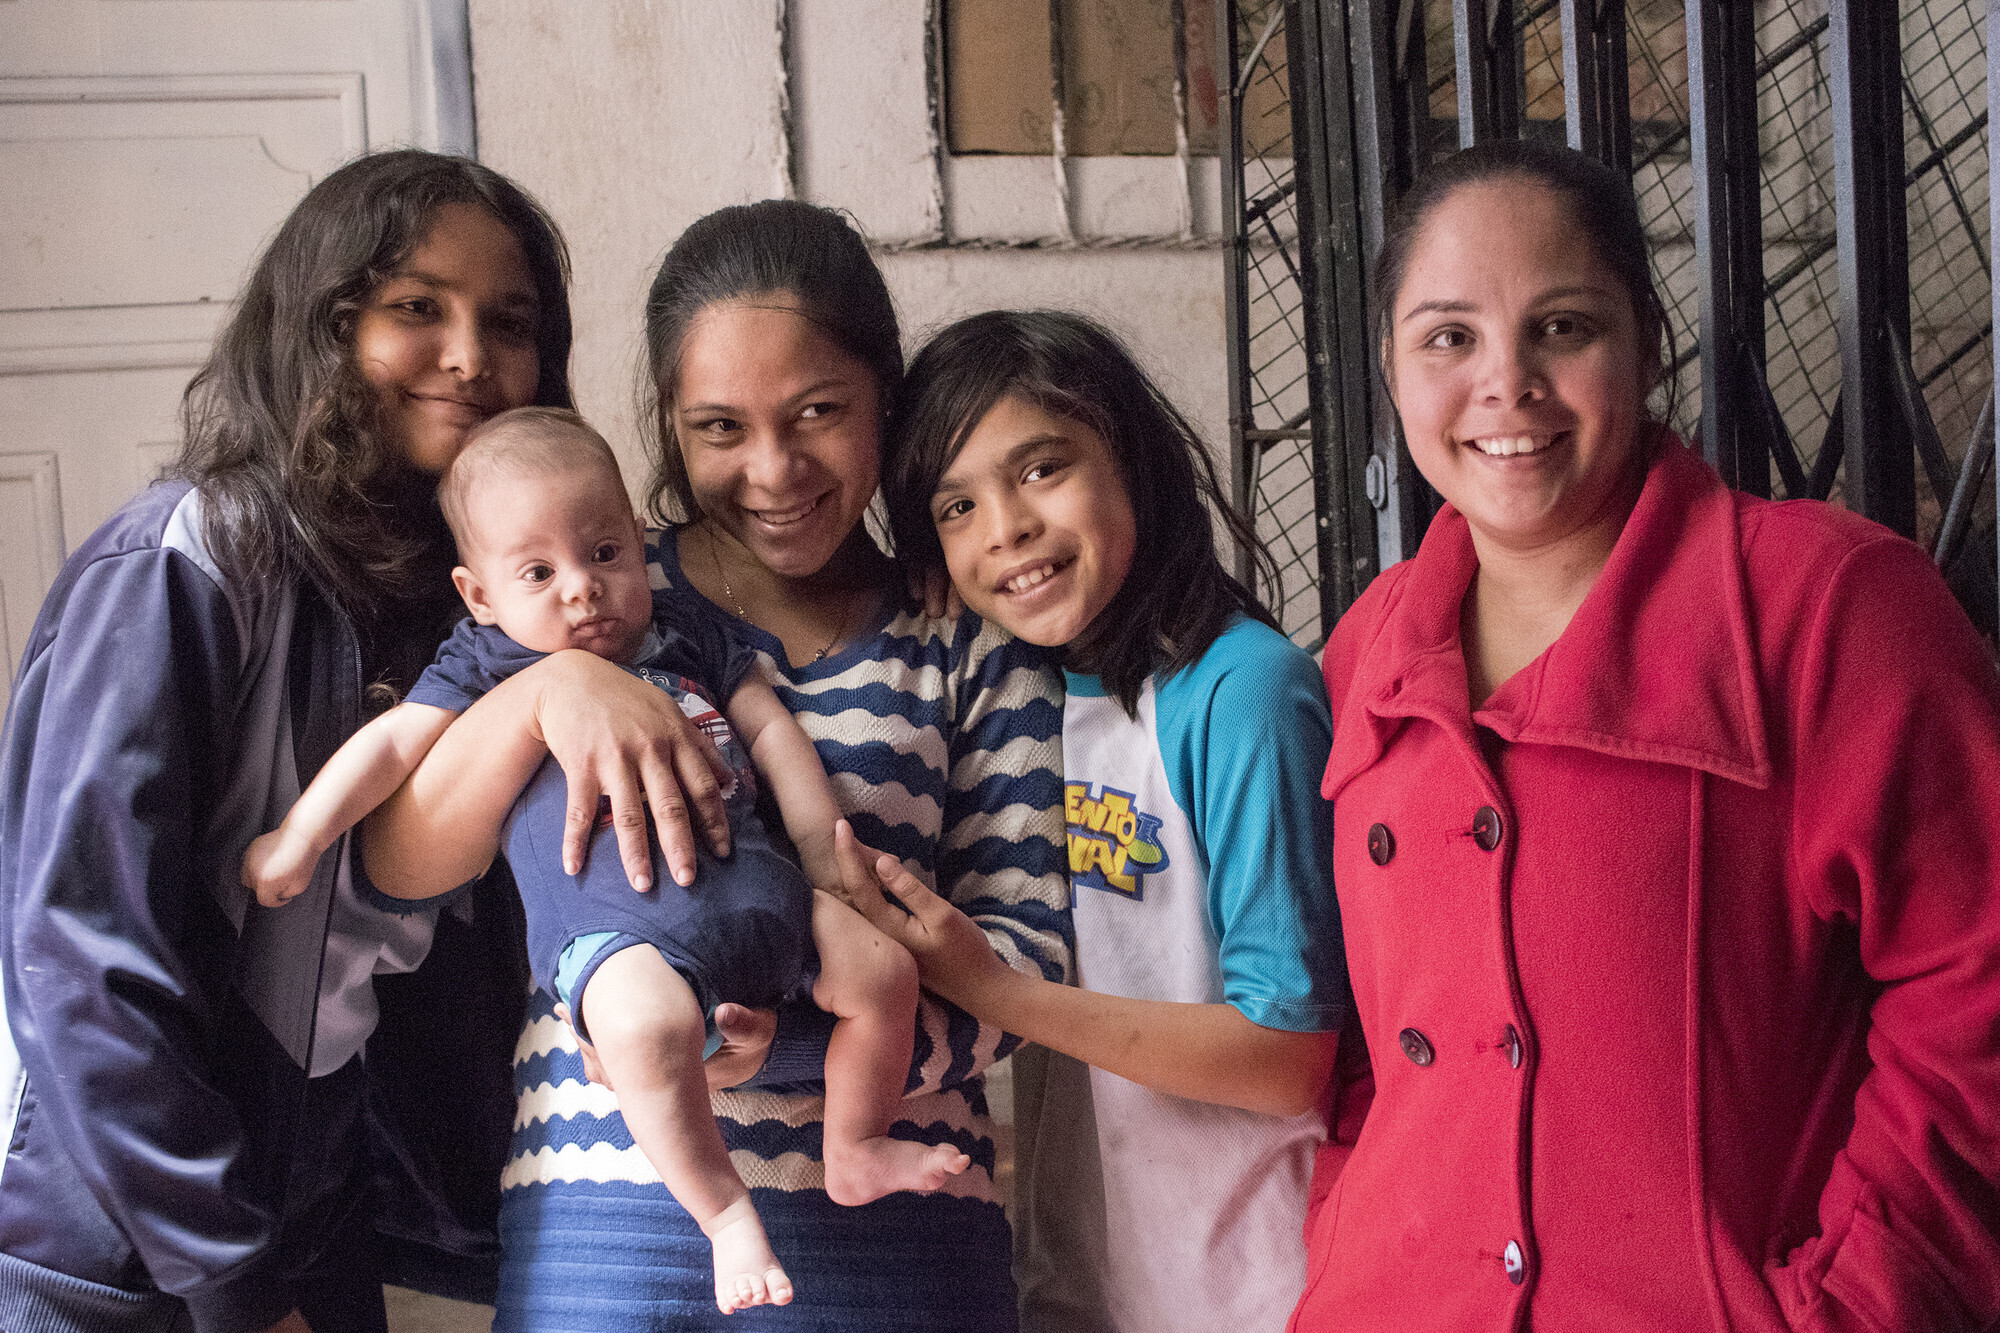 Gilchen Davalillo (centre) with her family at their new home in Quito, Ecuador. They fled the collapsing economy in Venezuela. Your donations empowered our partners in Quito to provide housing and other support. (MCC photo/Annalee Giesbrecht)